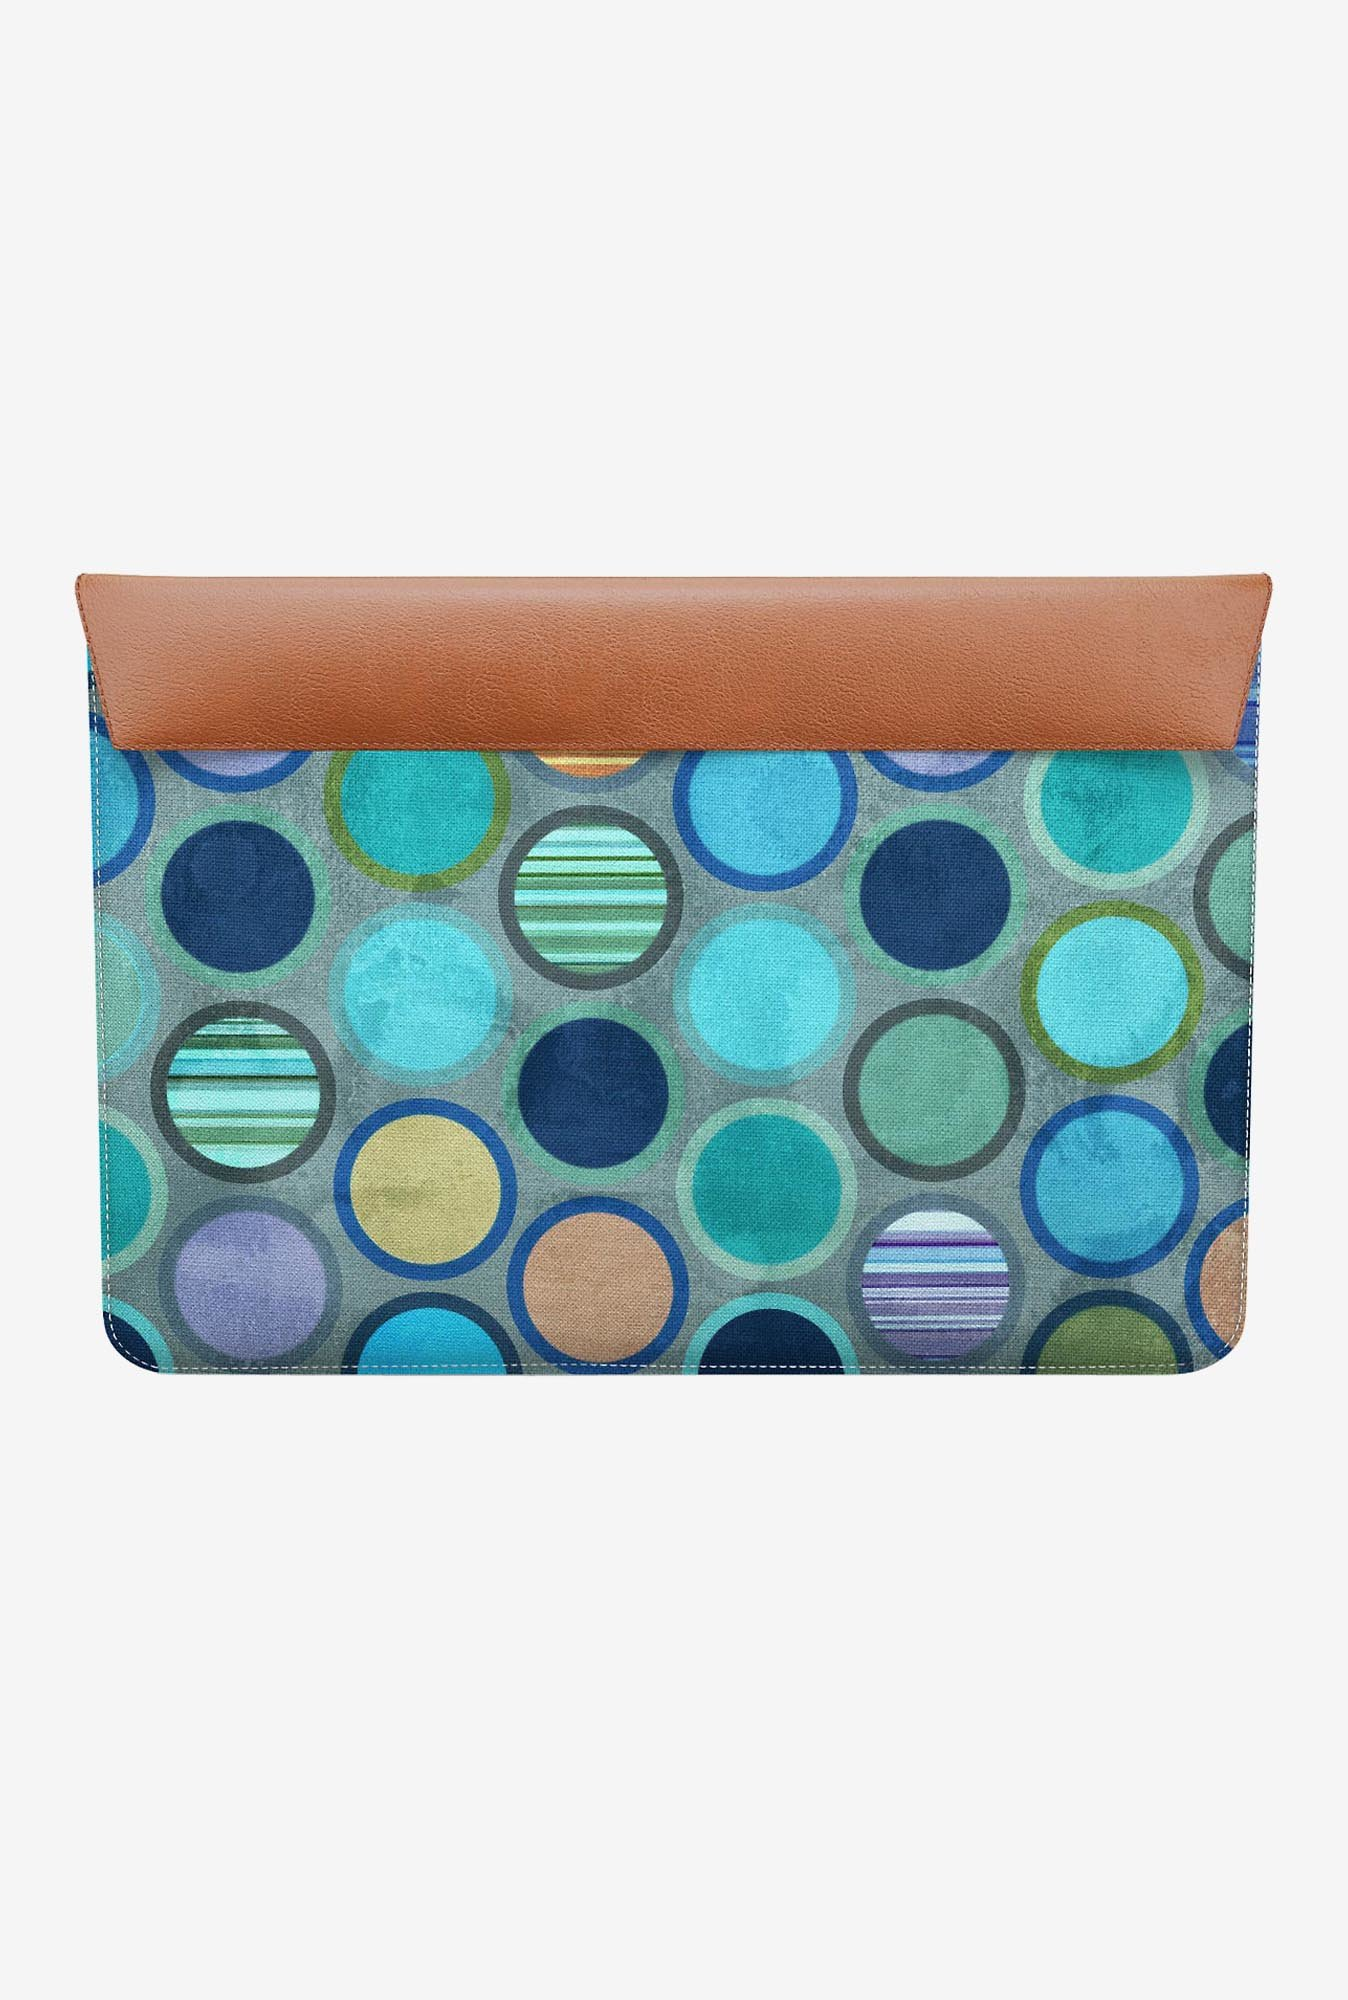 "DailyObjects Paint Pots MacBook Air 11"" Envelope Sleeve"